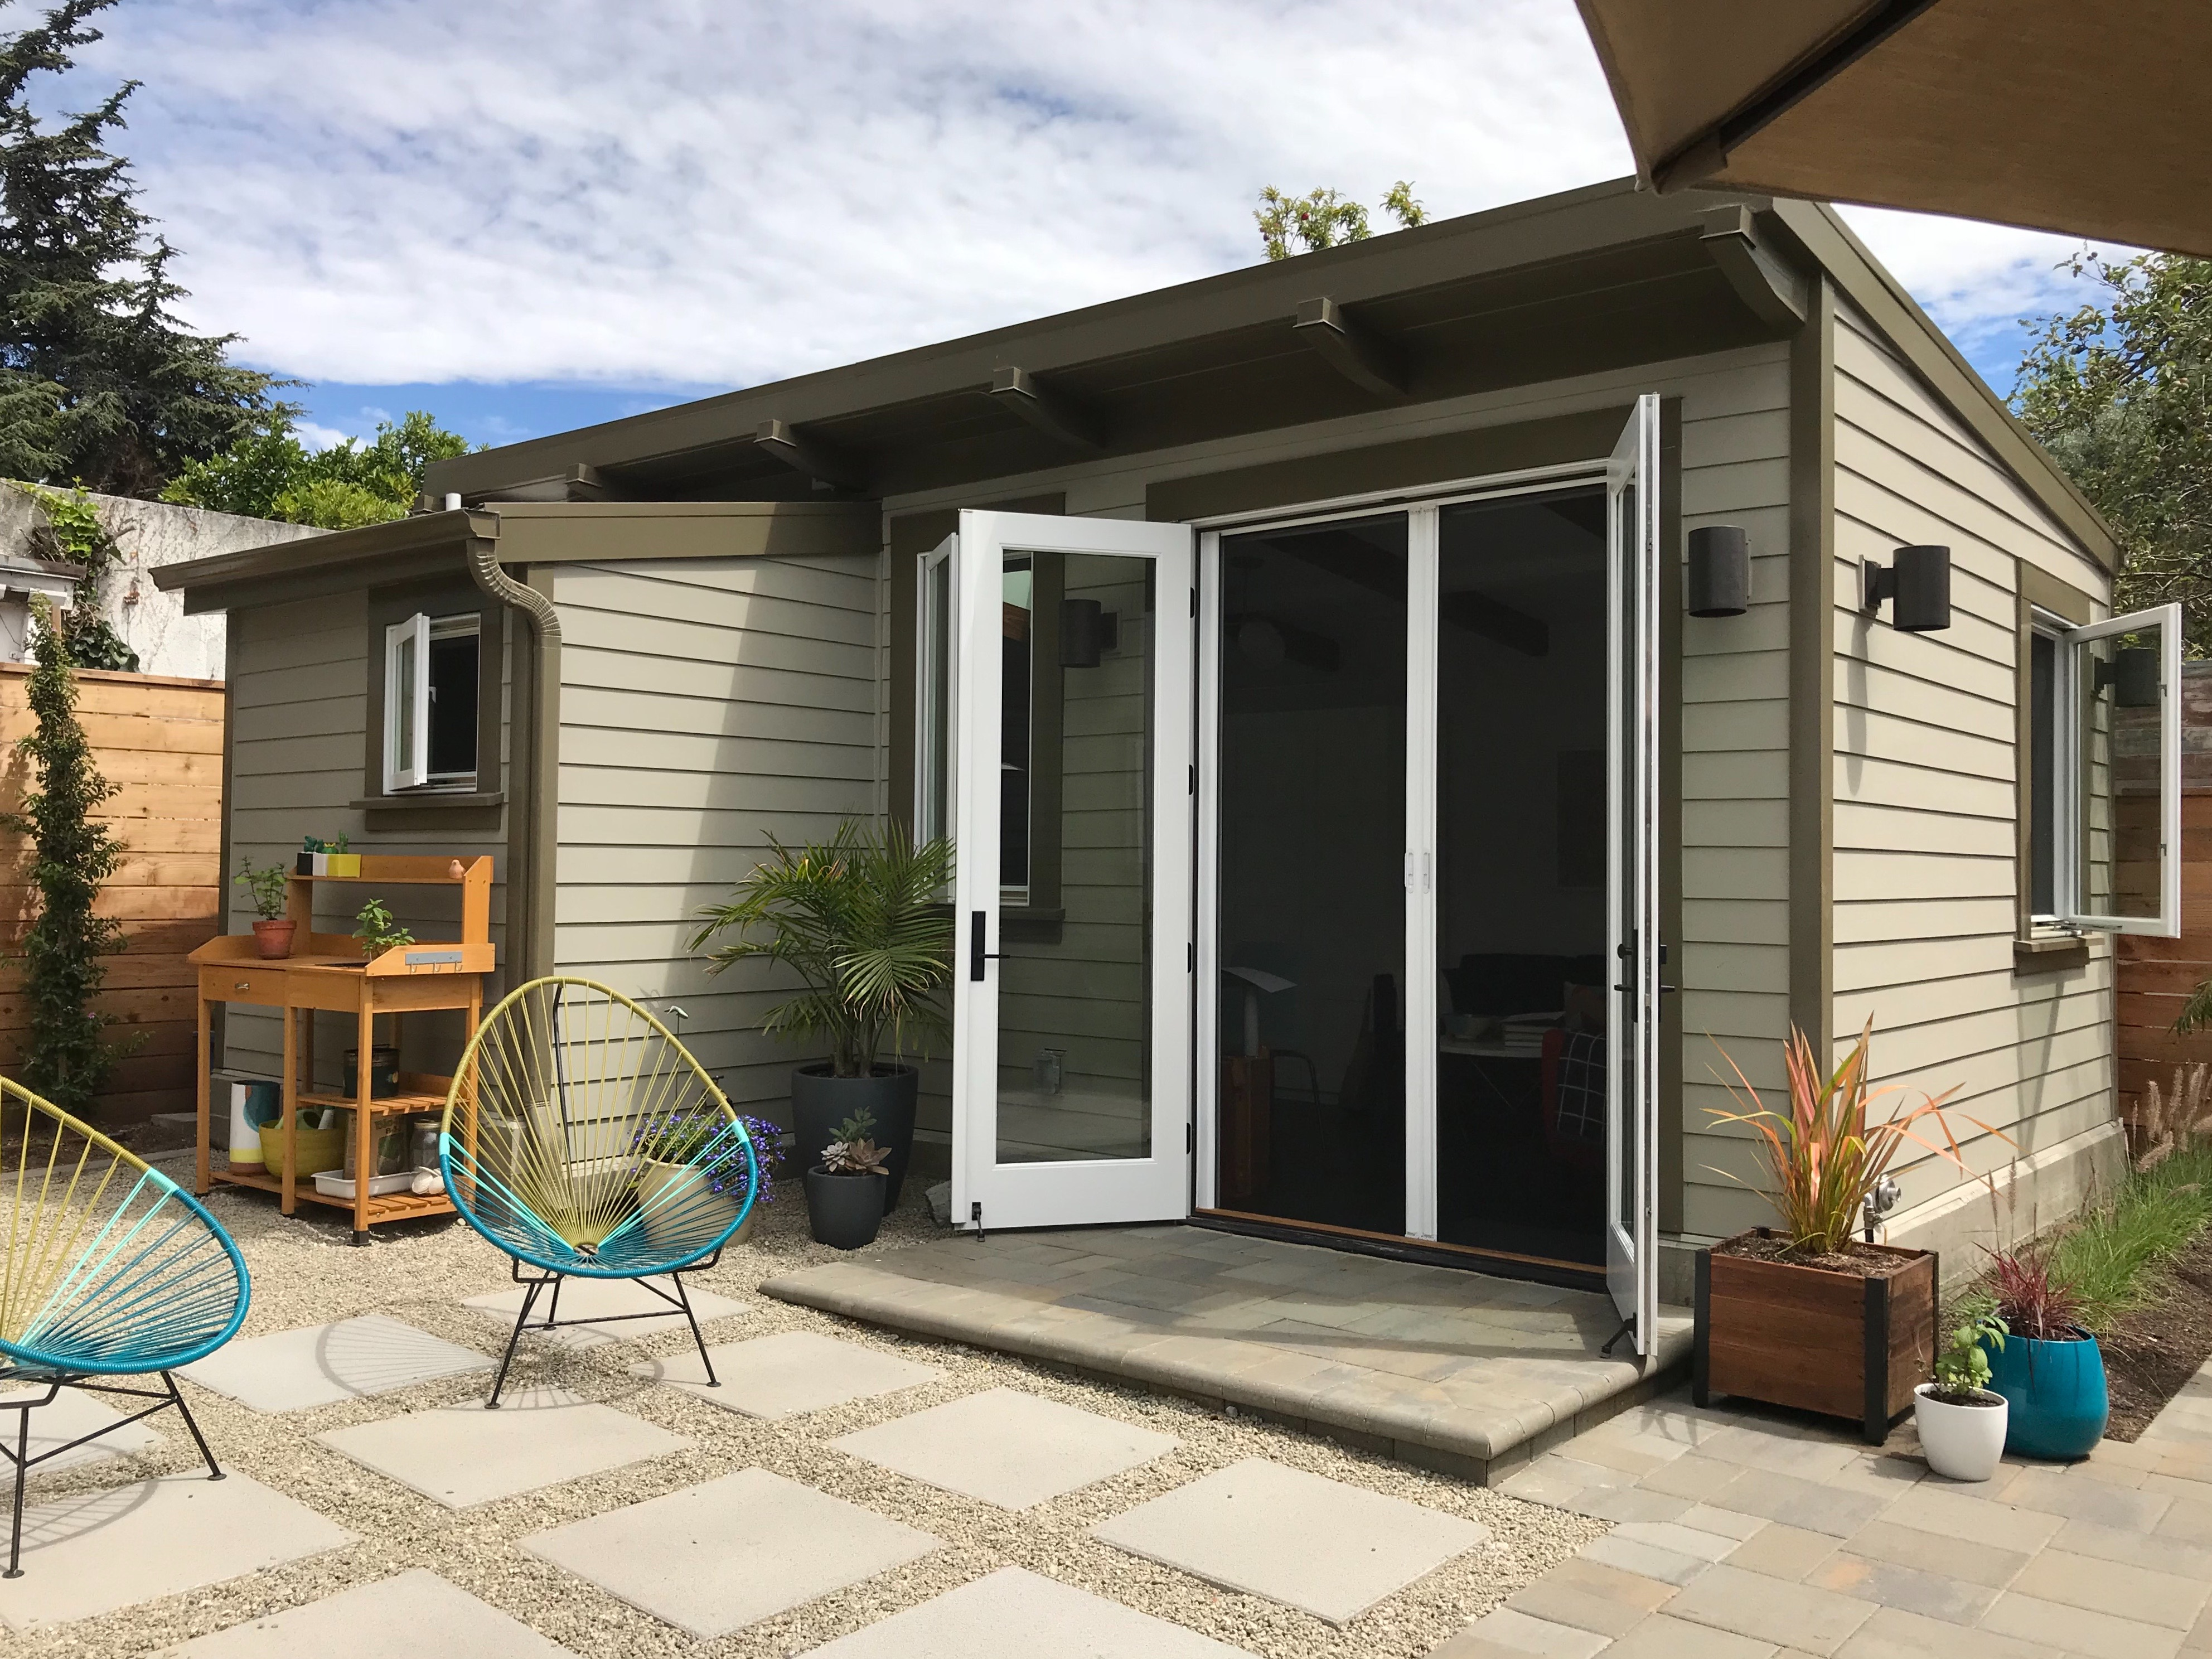 Terrific 8 Tiny Houses You Can Buy For Under 30 000 Apartment Therapy Home Interior And Landscaping Ologienasavecom